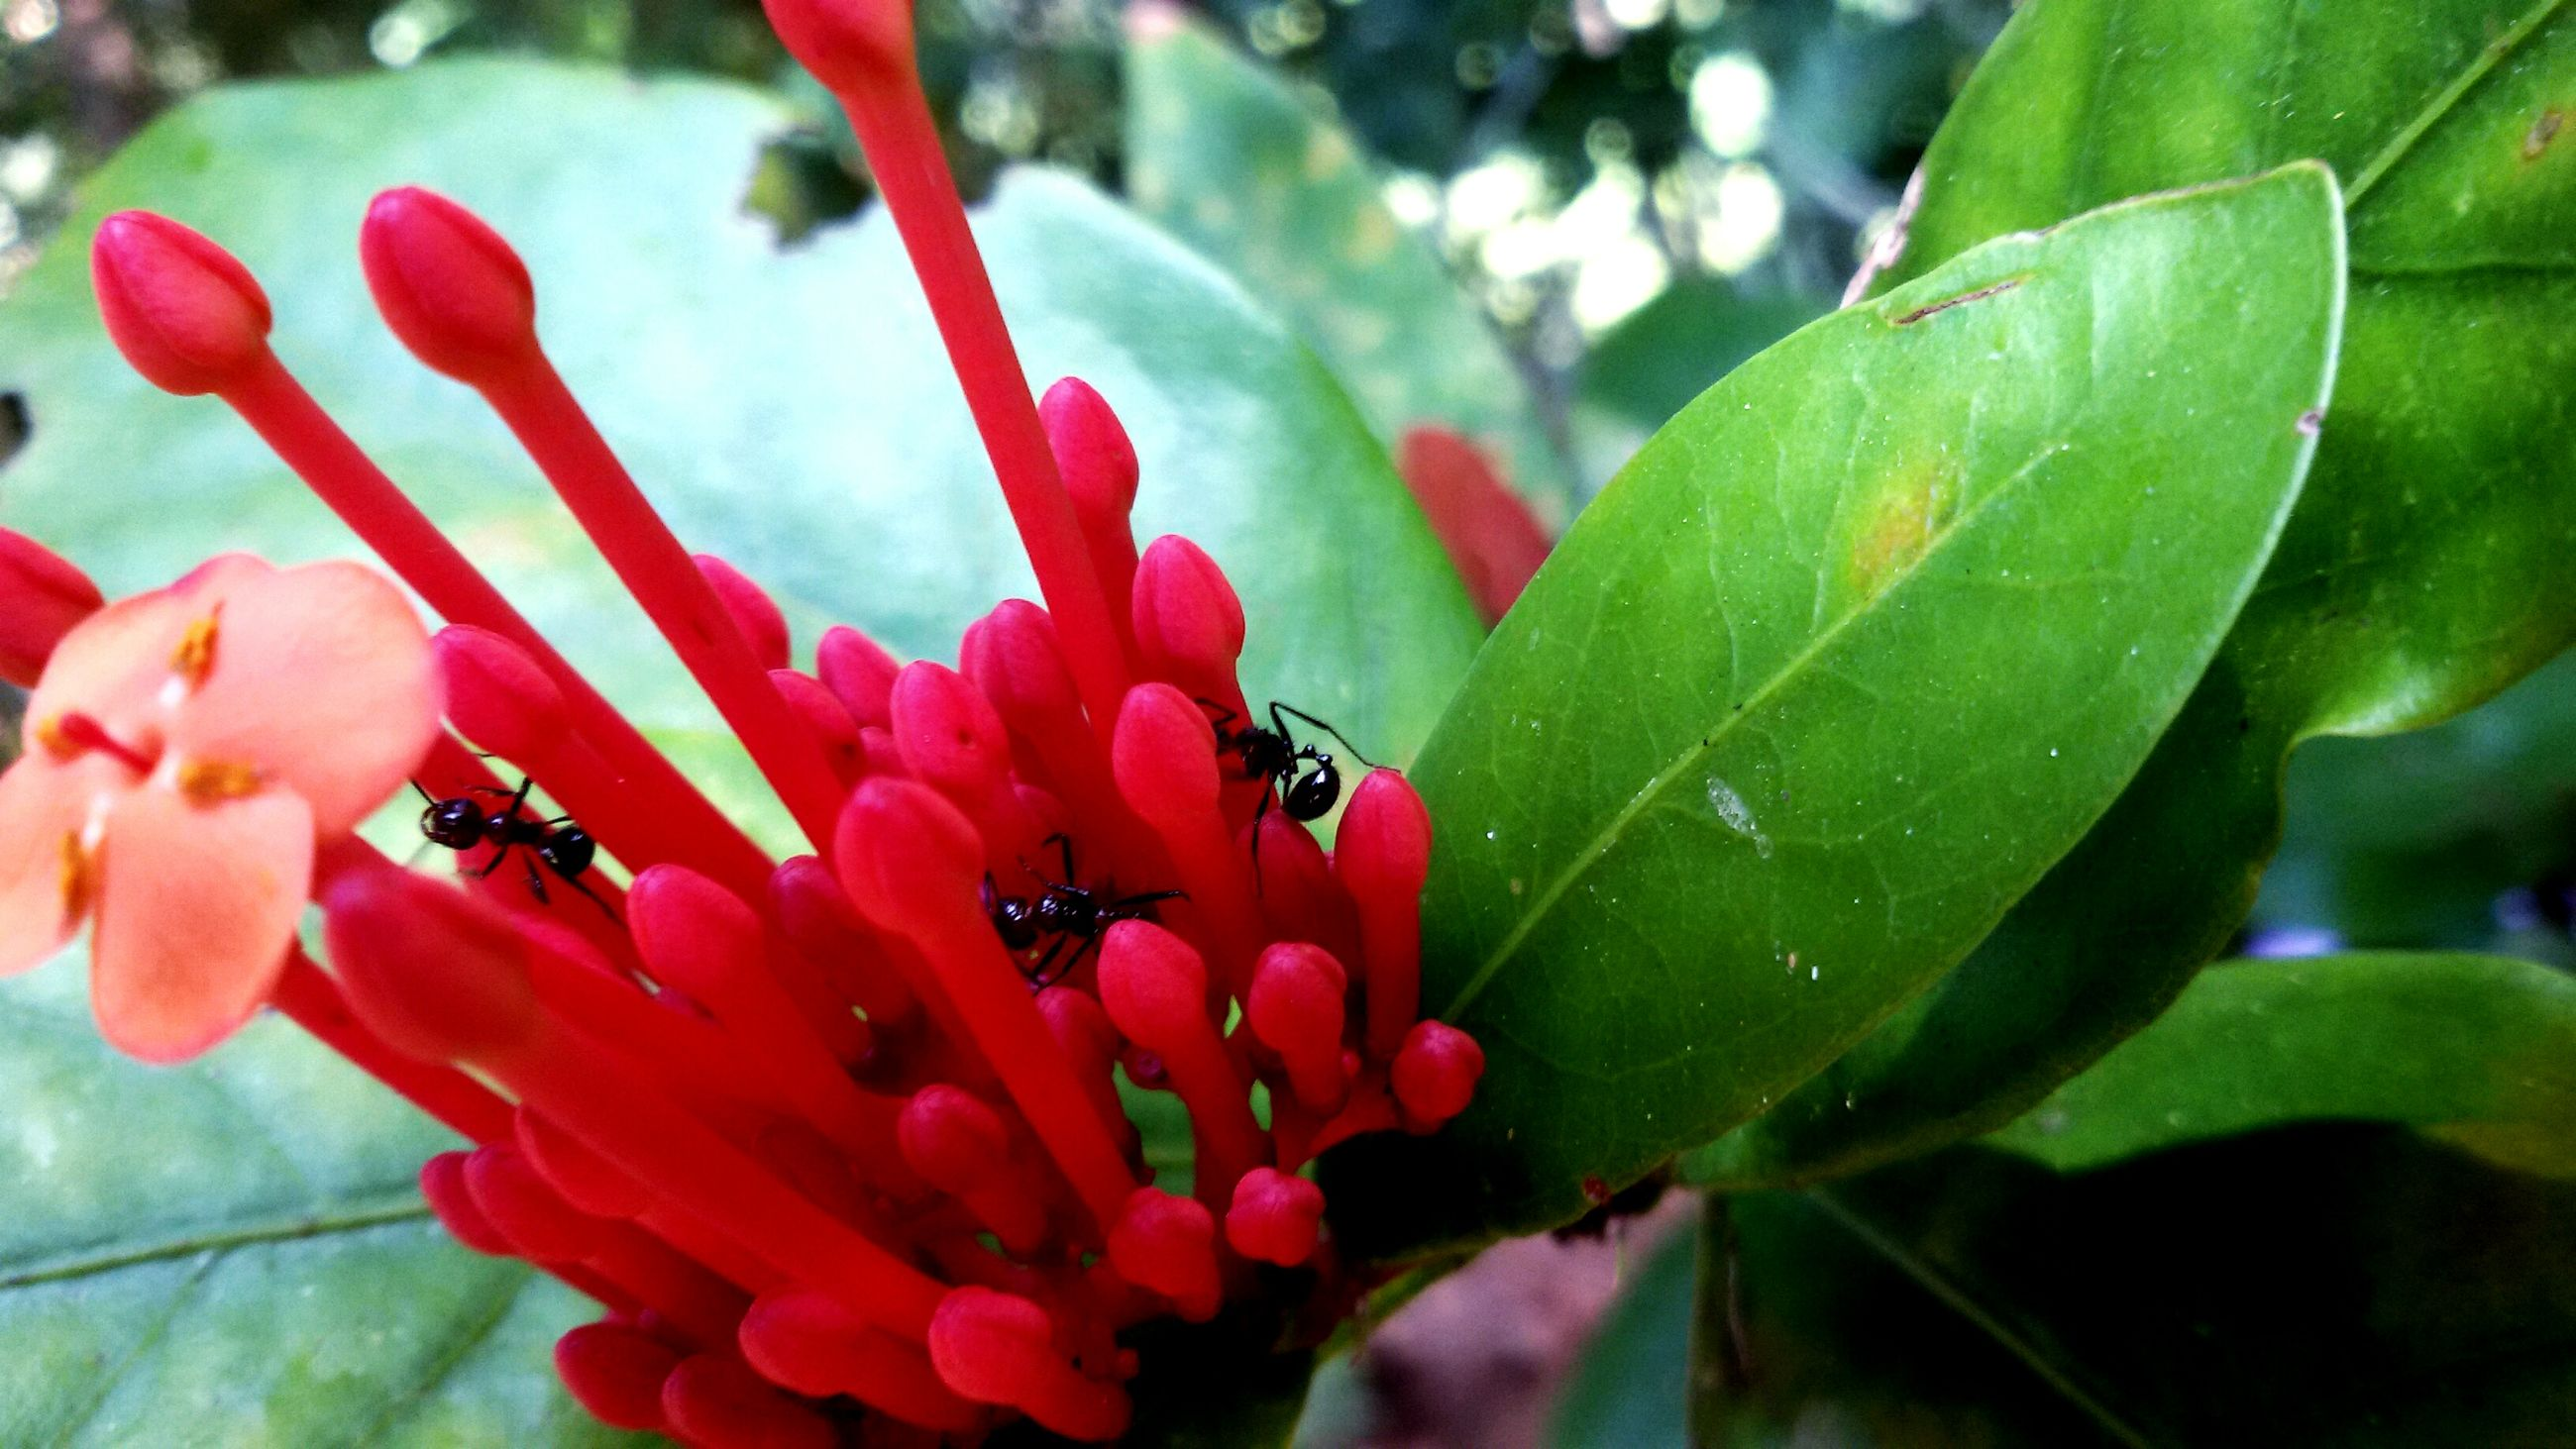 leaf, flower, focus on foreground, growth, close-up, freshness, petal, plant, red, nature, fragility, beauty in nature, pink color, bud, green color, day, flower head, outdoors, selective focus, stem